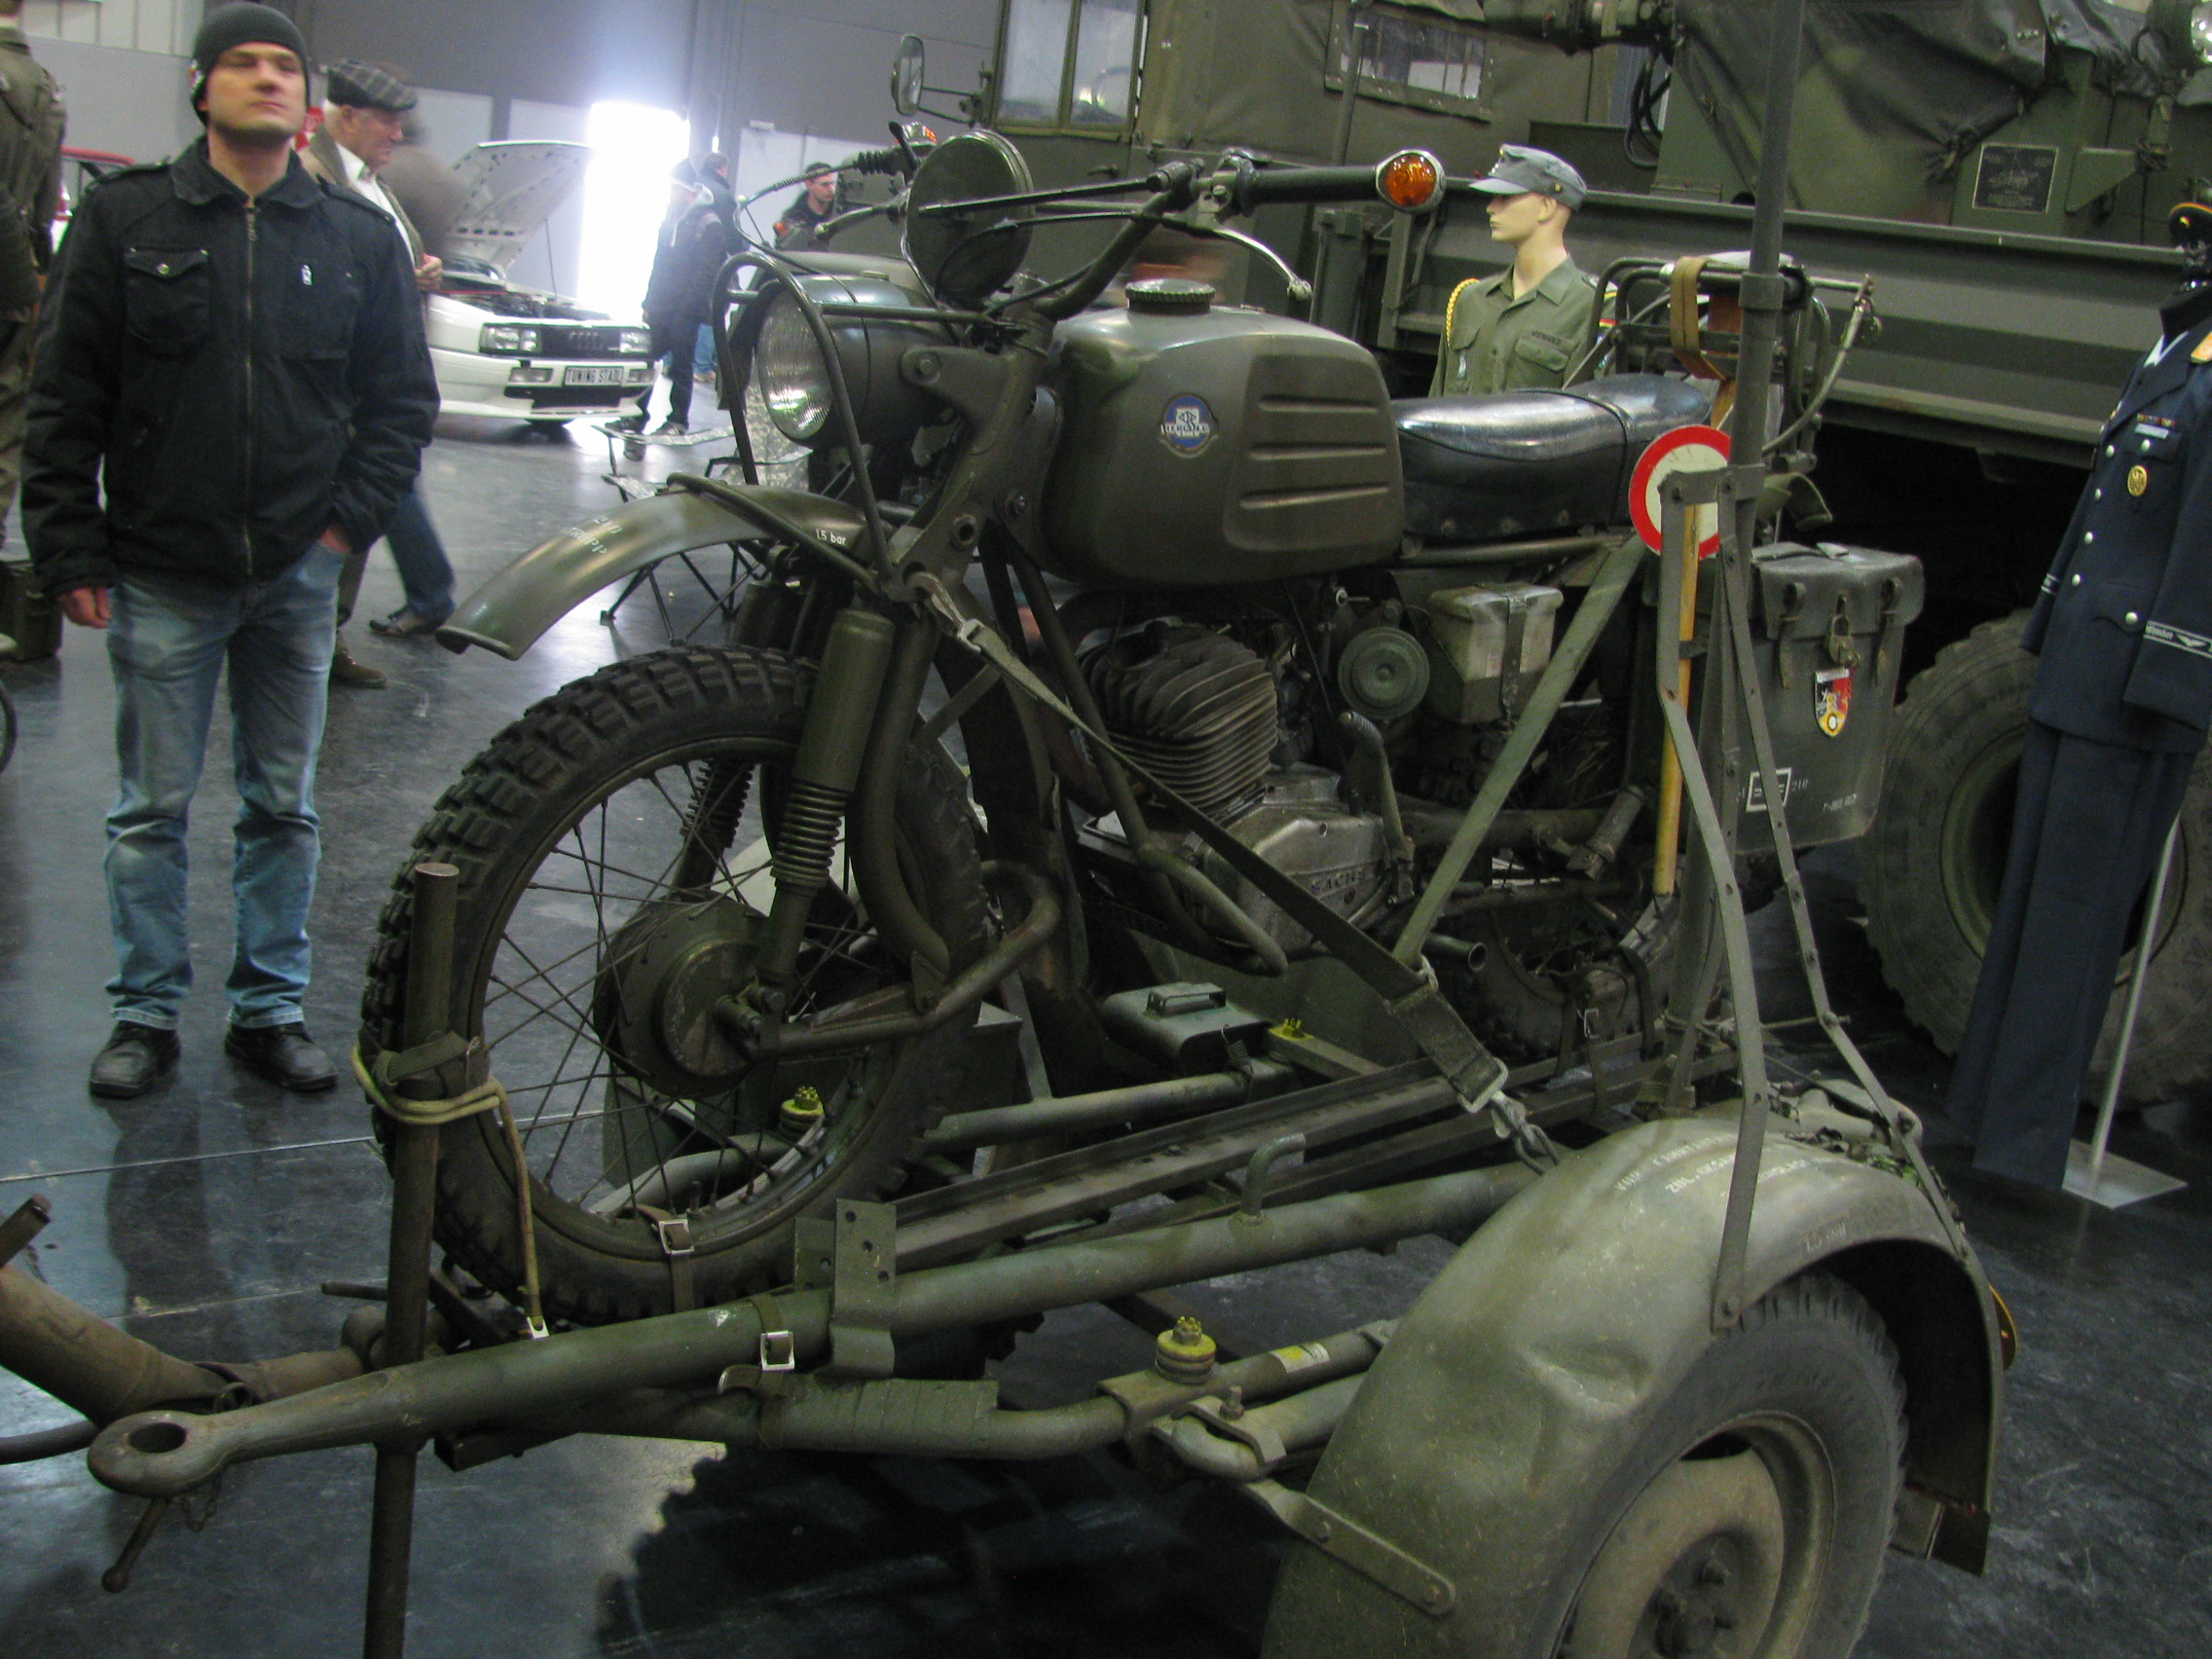 Hercules K 125 Military 1973 images #96508